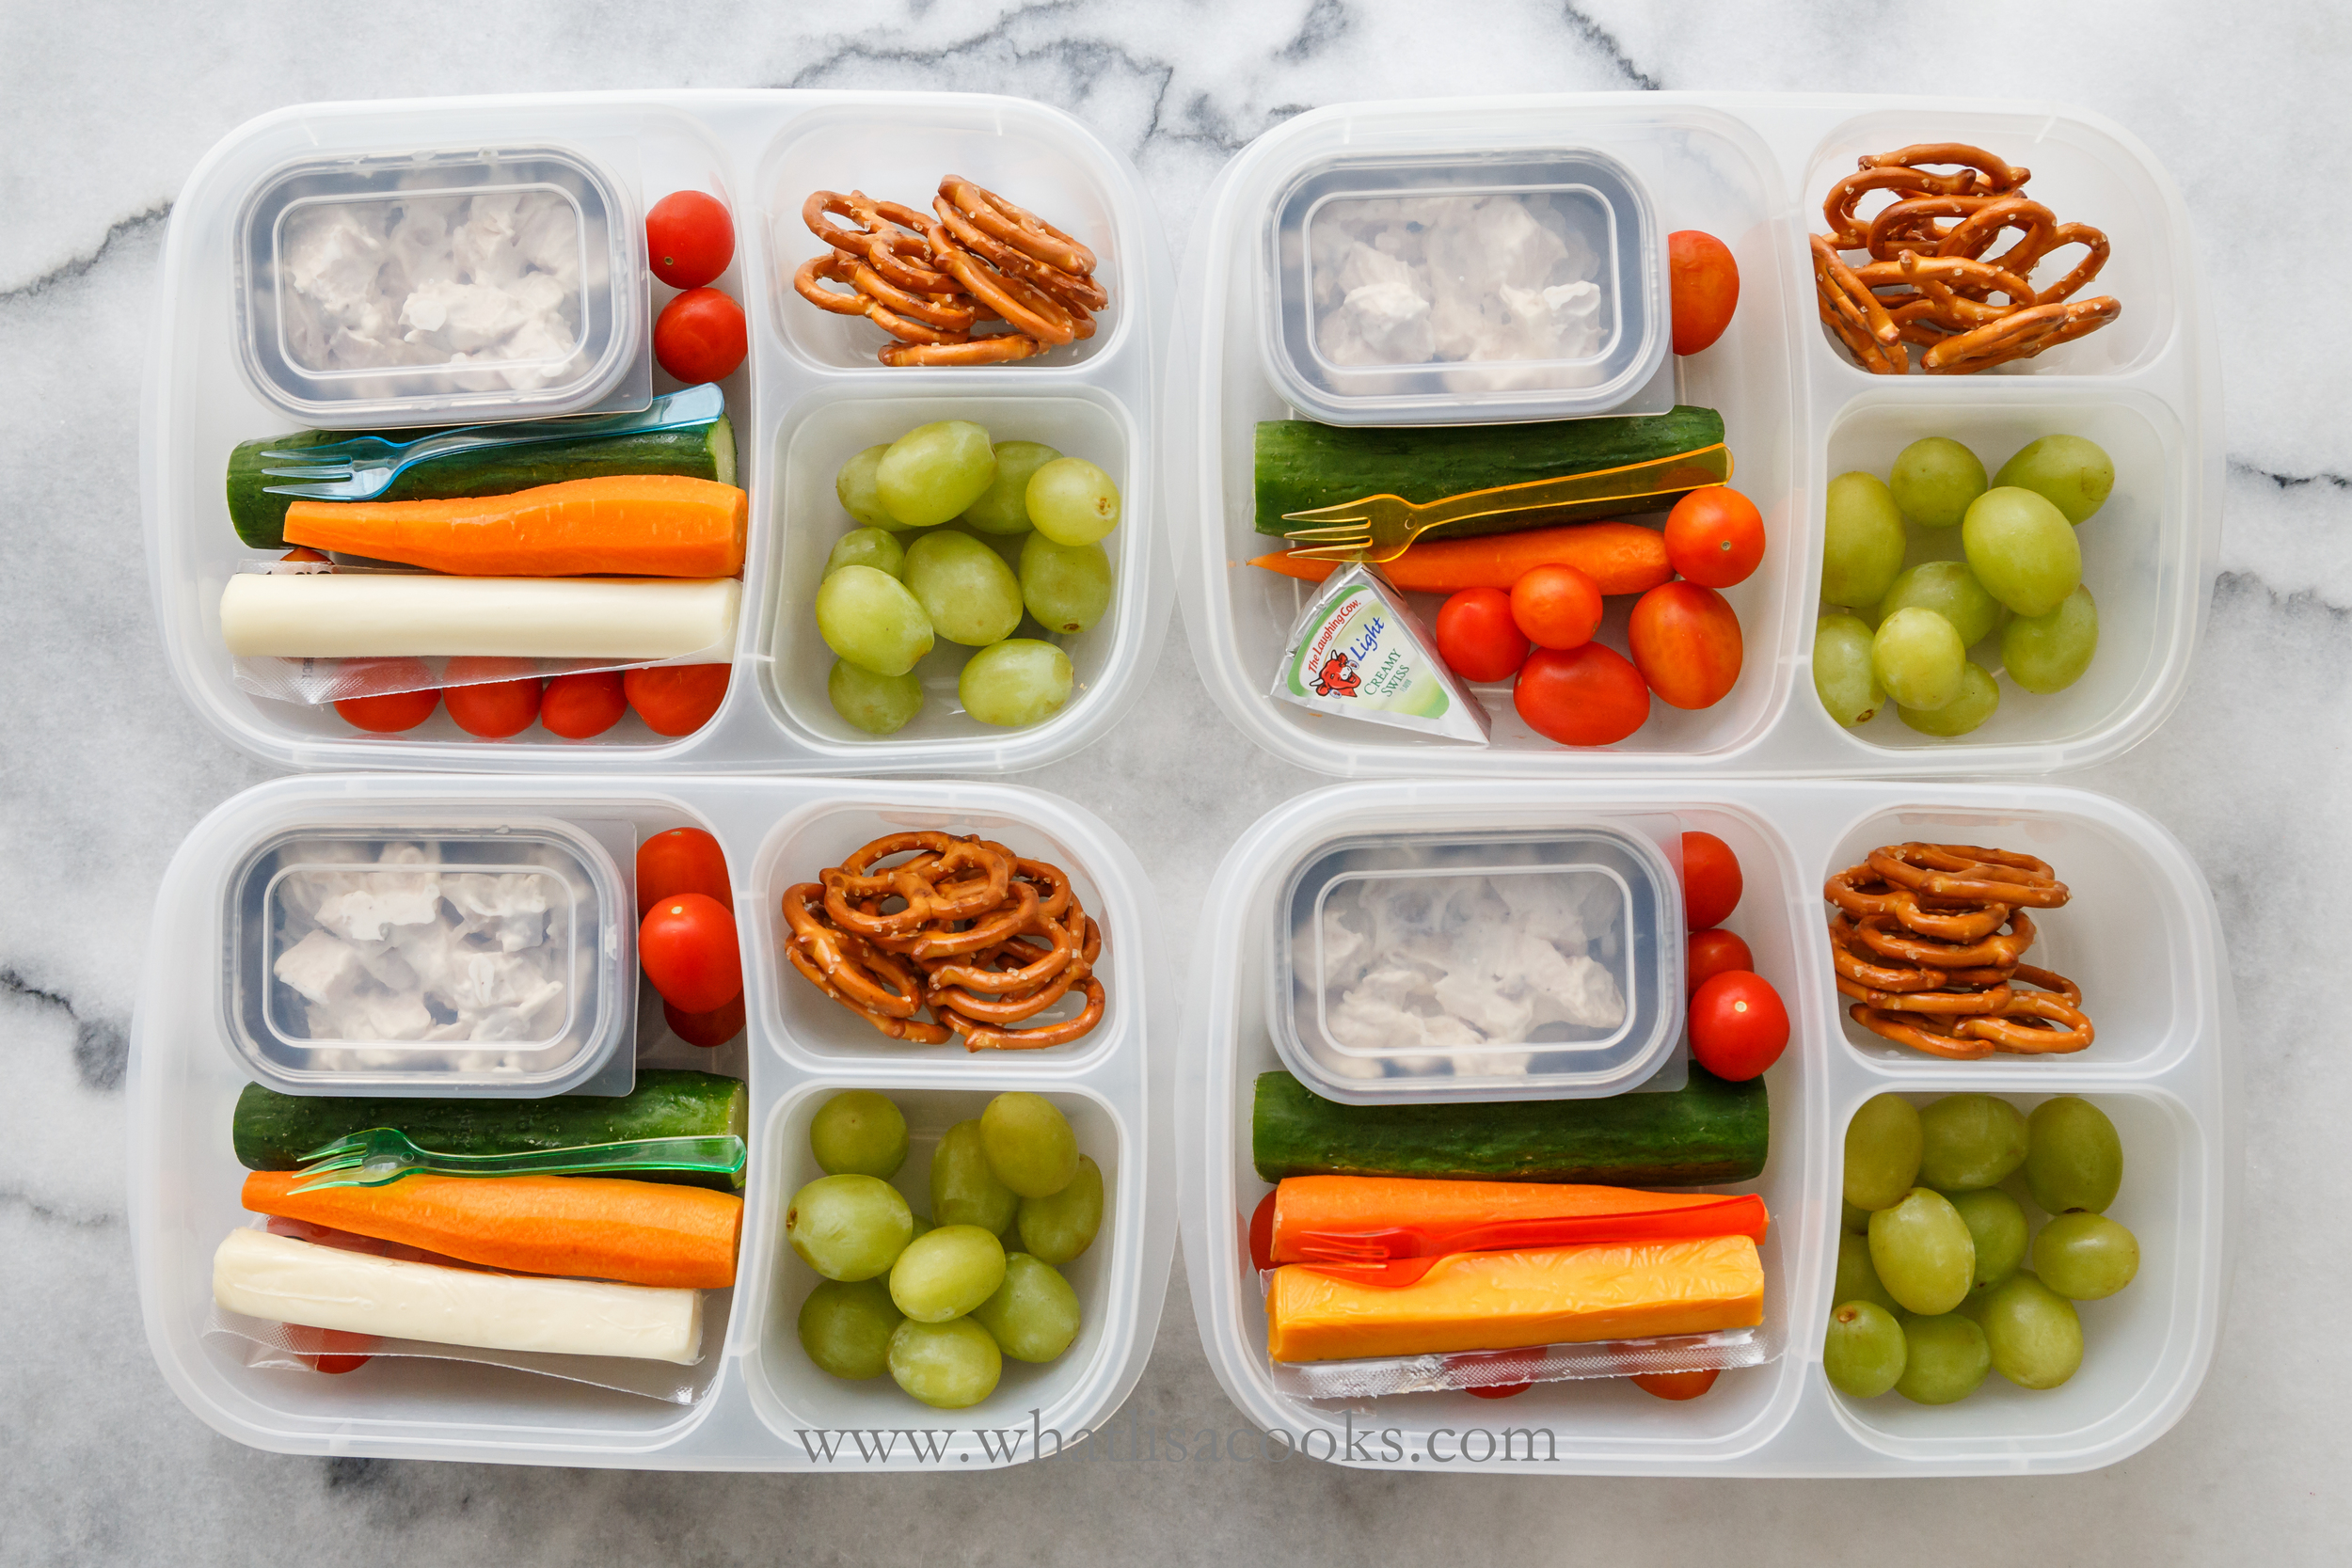 A little chicken salad and a cheese stick for protein, carrots, tomatoes and cucumbers for veggies, grapes for fruit, and a few pretzels for a carb.